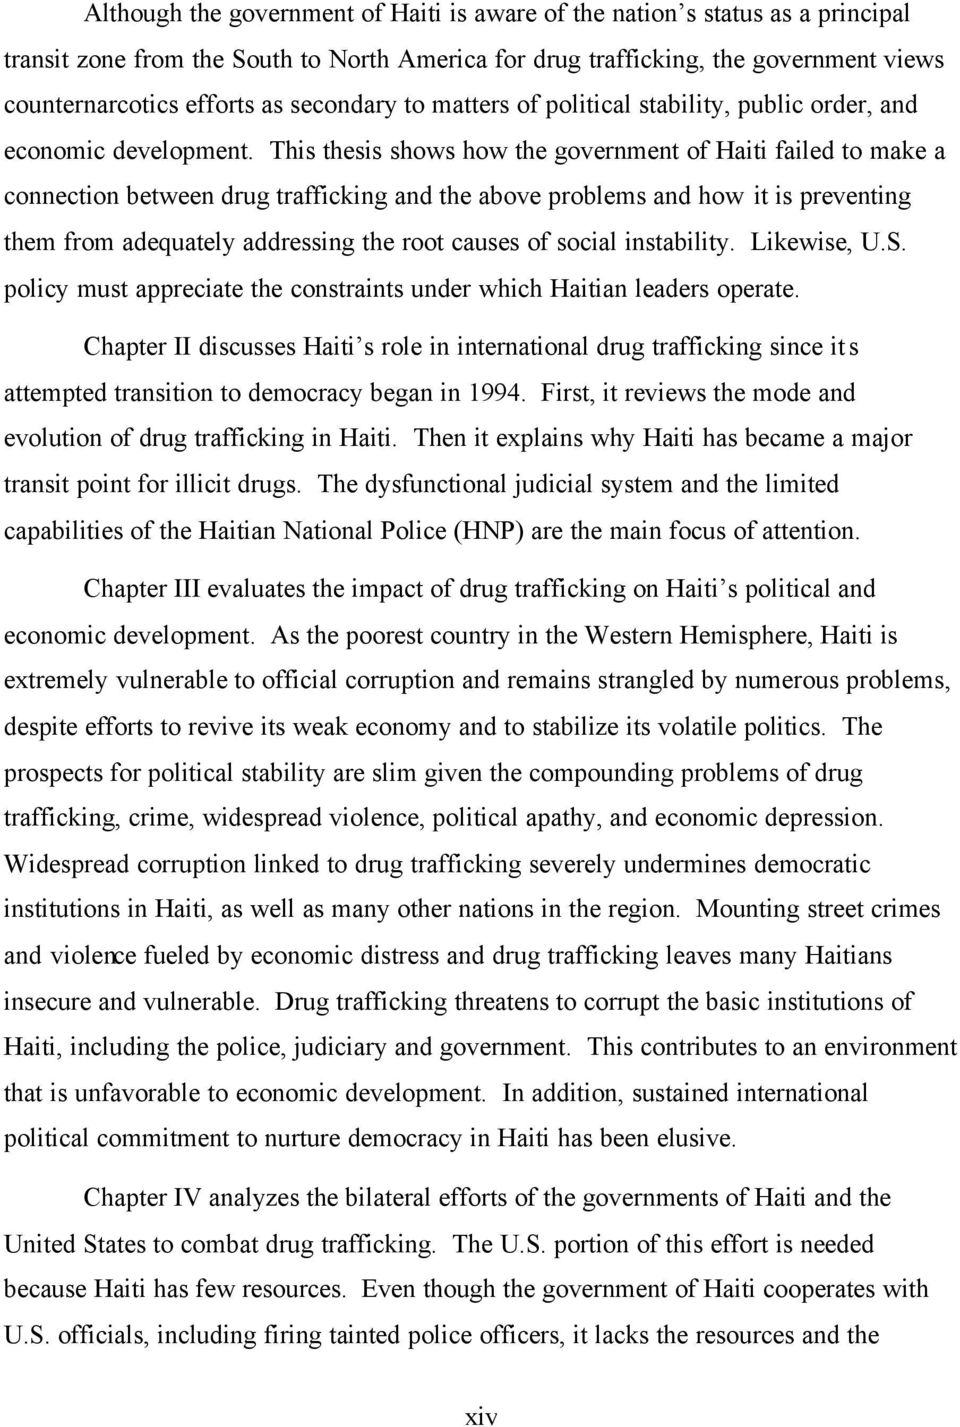 This thesis shows how the government of Haiti failed to make a connection between drug trafficking and the above problems and how it is preventing them from adequately addressing the root causes of